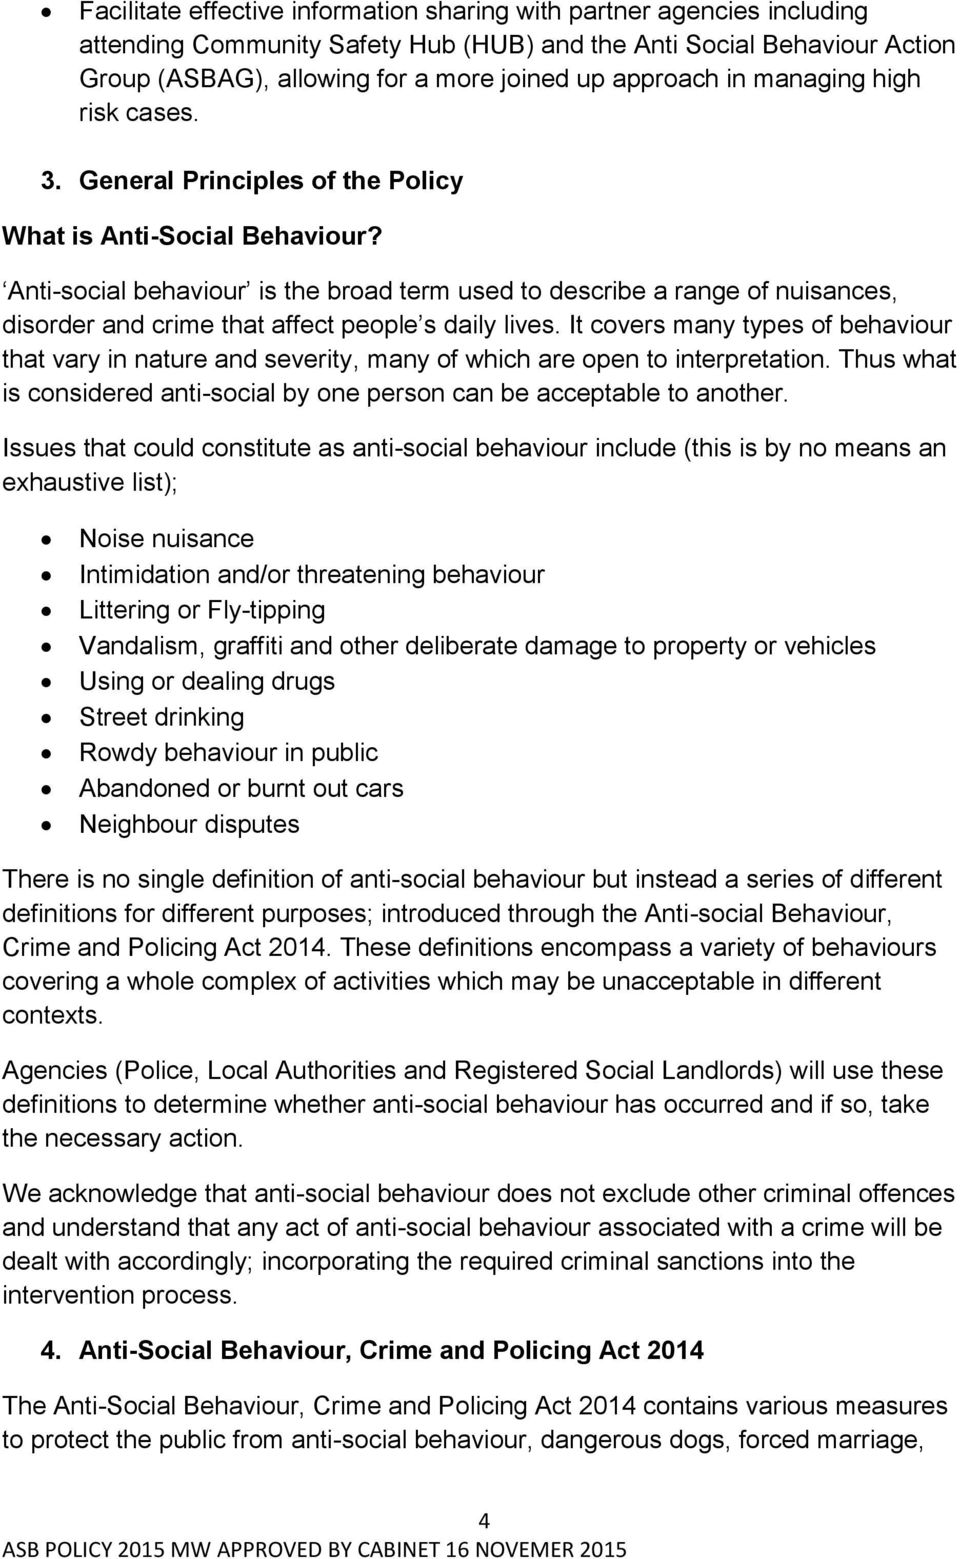 Anti-social behaviour is the broad term used to describe a range of nuisances, disorder and crime that affect people s daily lives.